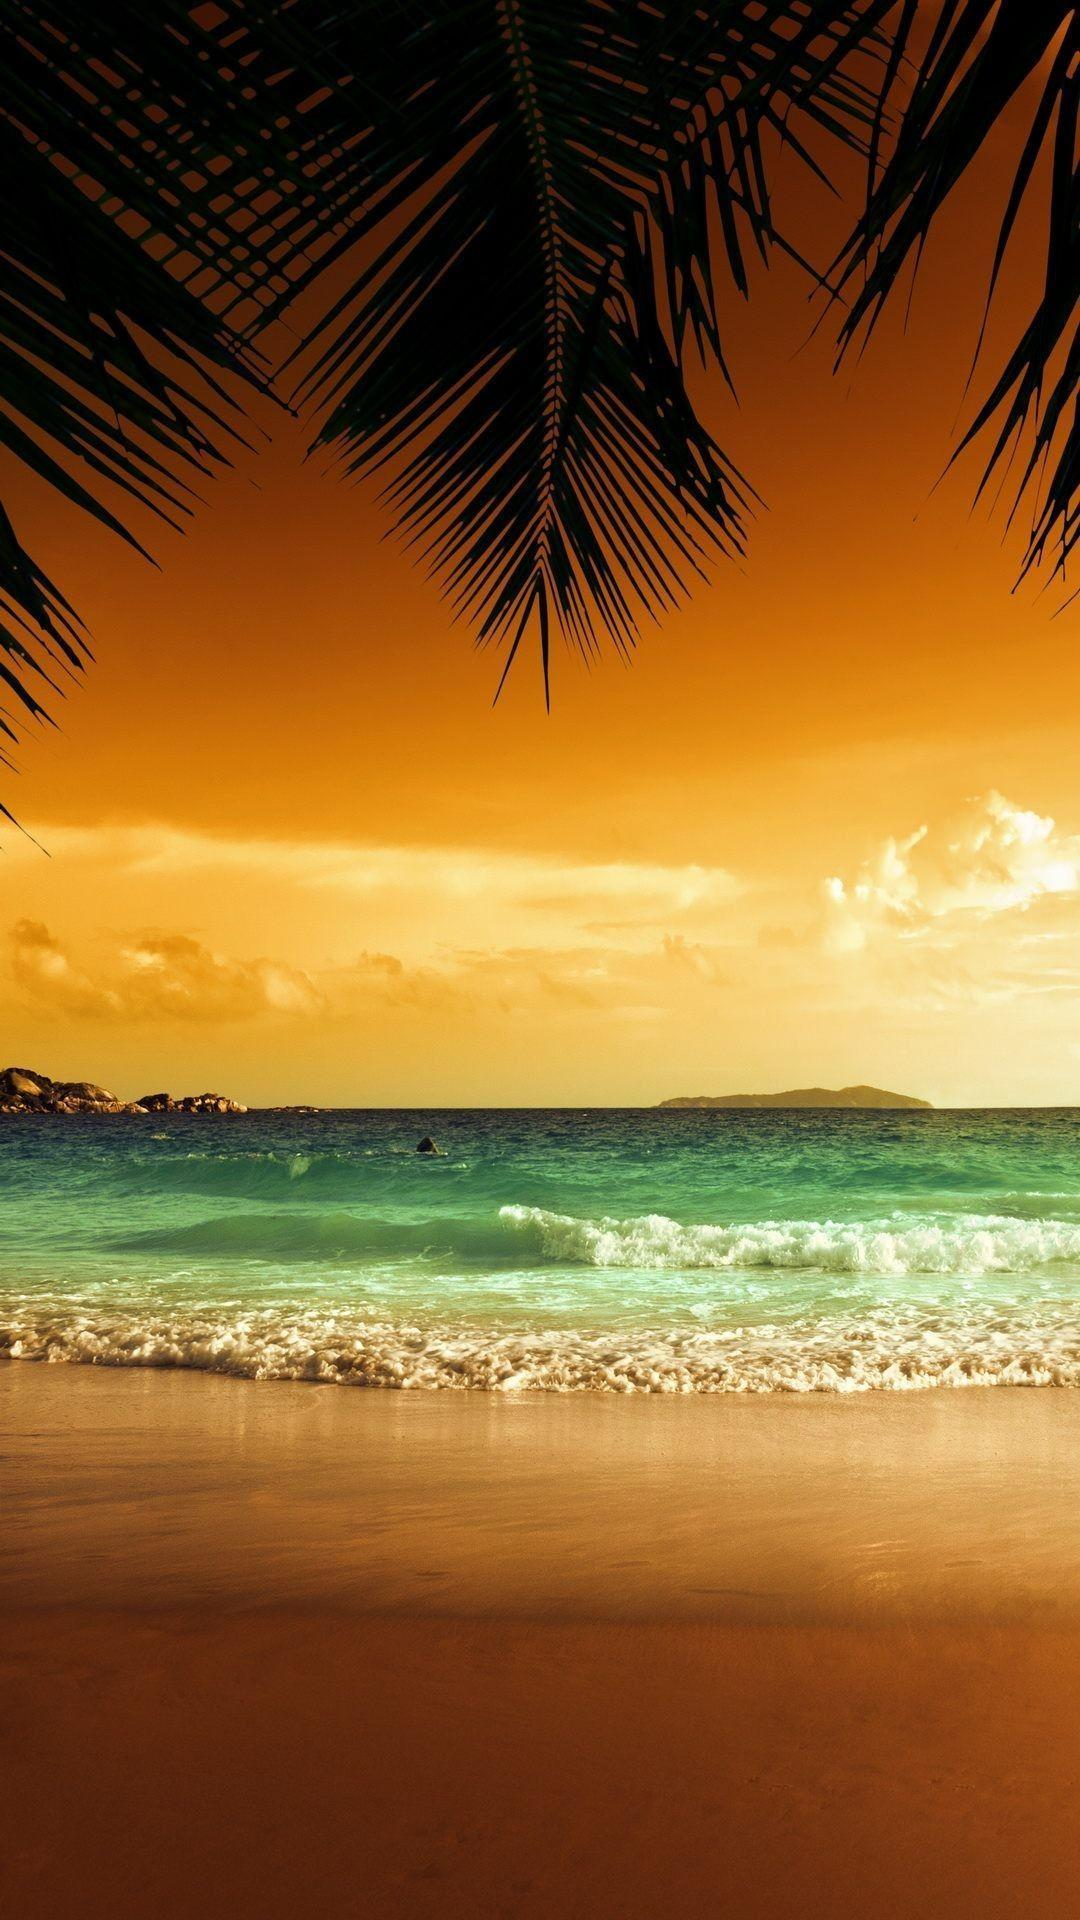 TROPICAL WALLPAPERS 2017 - Wallpaper Cave Relaxing Beach Background